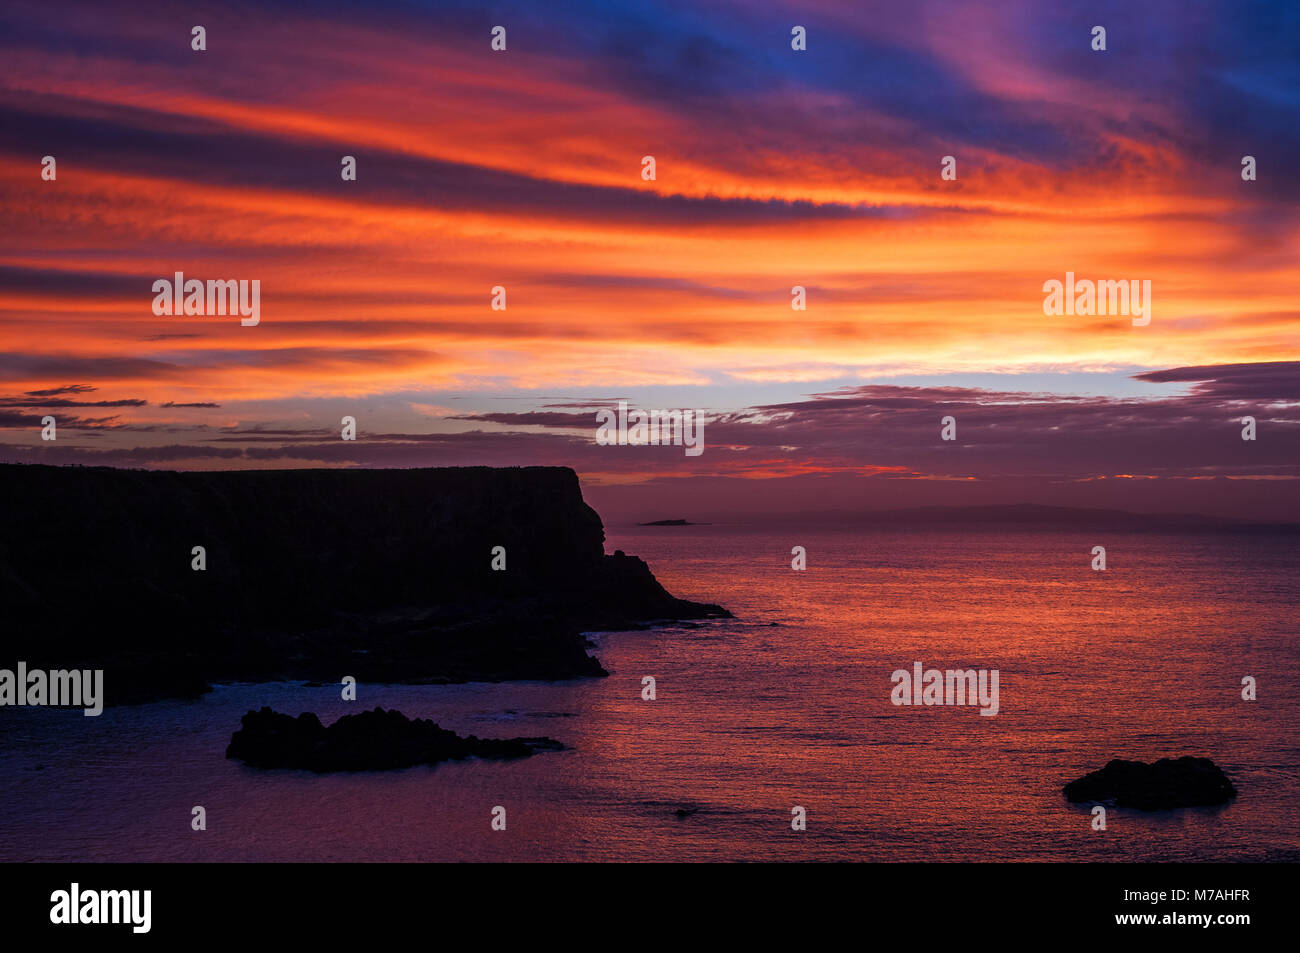 Abstract bile formation on the dream coast of the Giants Causeway, evening mood, Northern Ireland - Stock Image